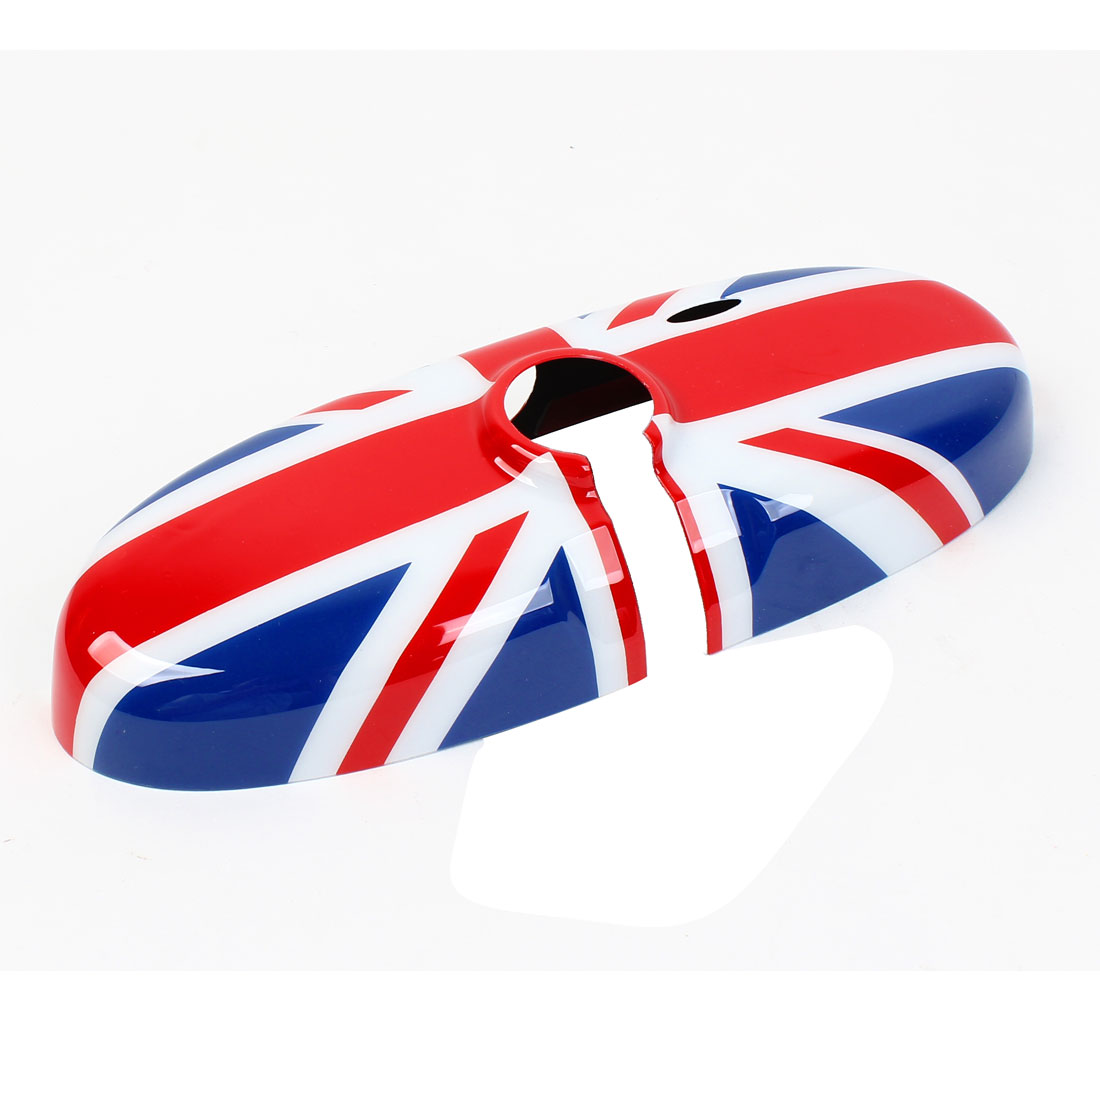 Union Jack Flag Pattern Rear View Mirror Cover Caps Housing for BMW MINI